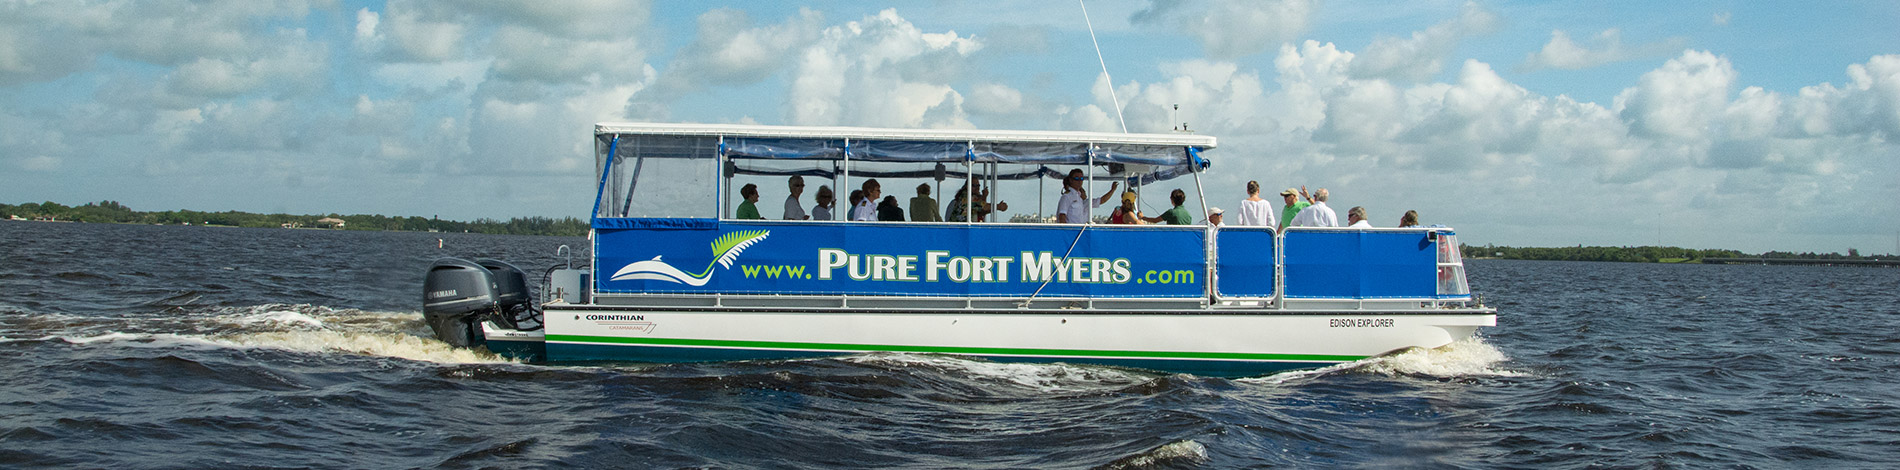 Employment opportunity pure fort myers for Pure fishing jobs